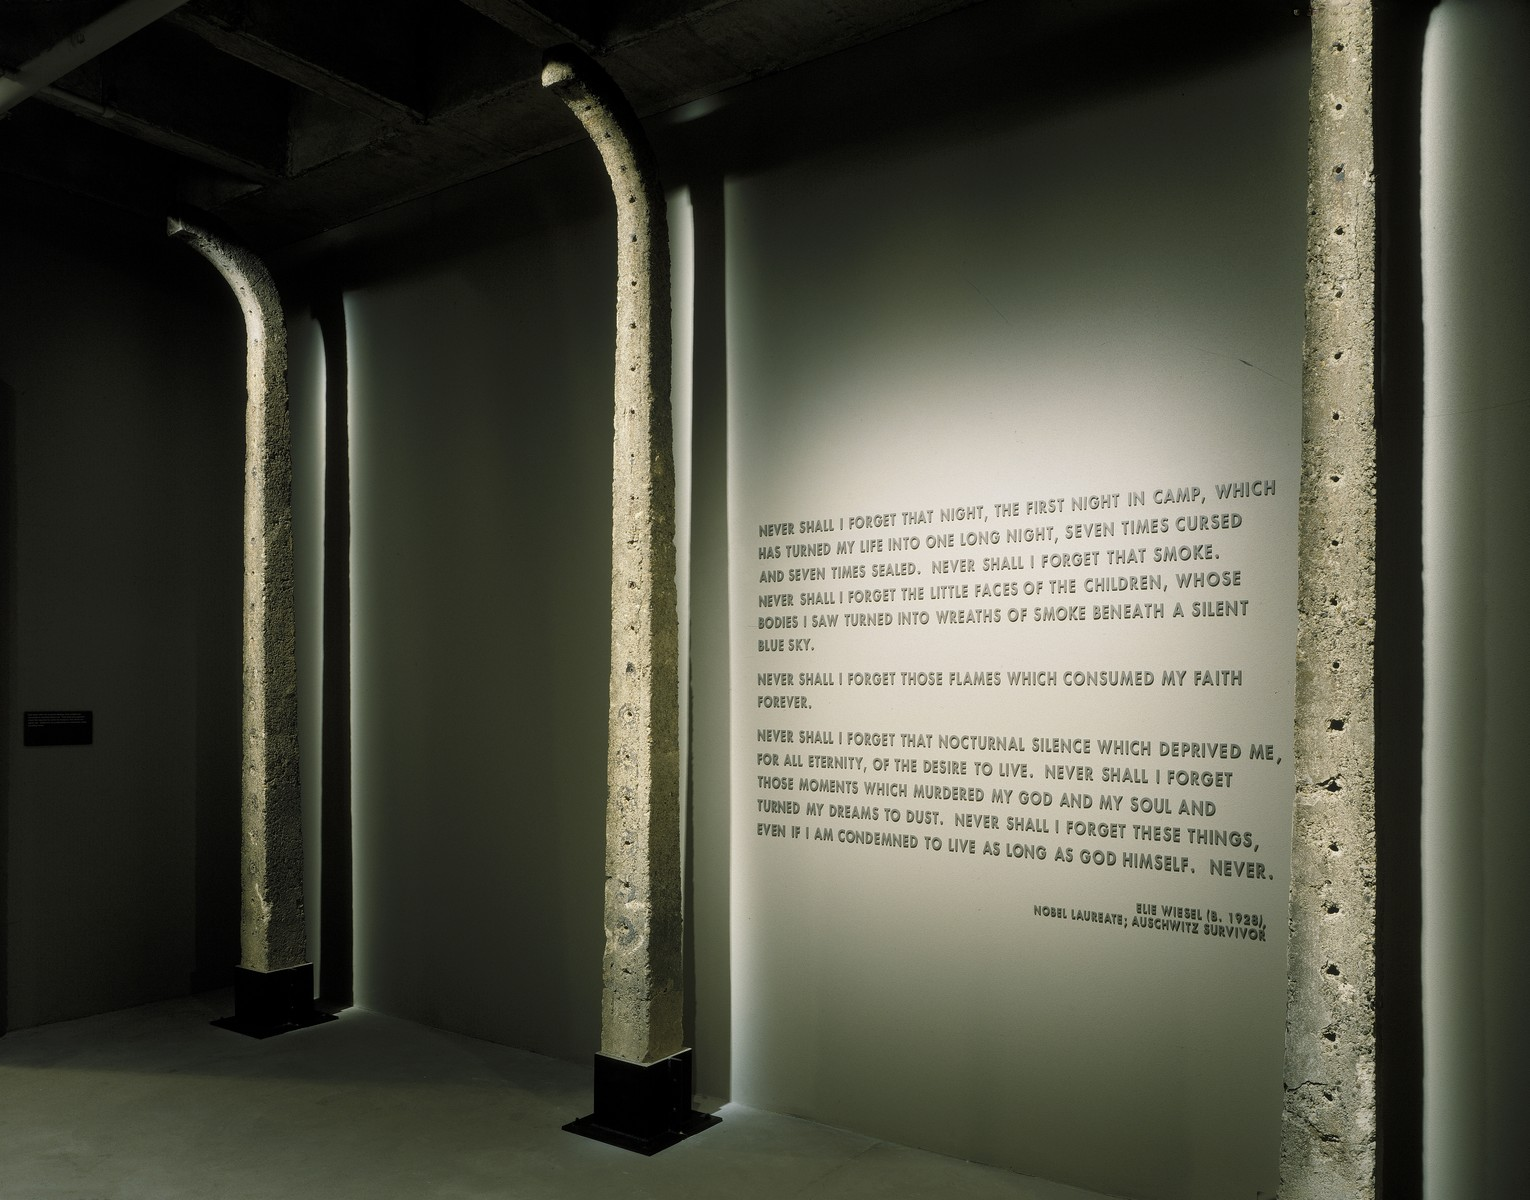 Auschwitz fence posts and Elie Wiesel quote in the third floor tower room of the permanent exhibition at the U.S. Holocaust Memorial Museum.